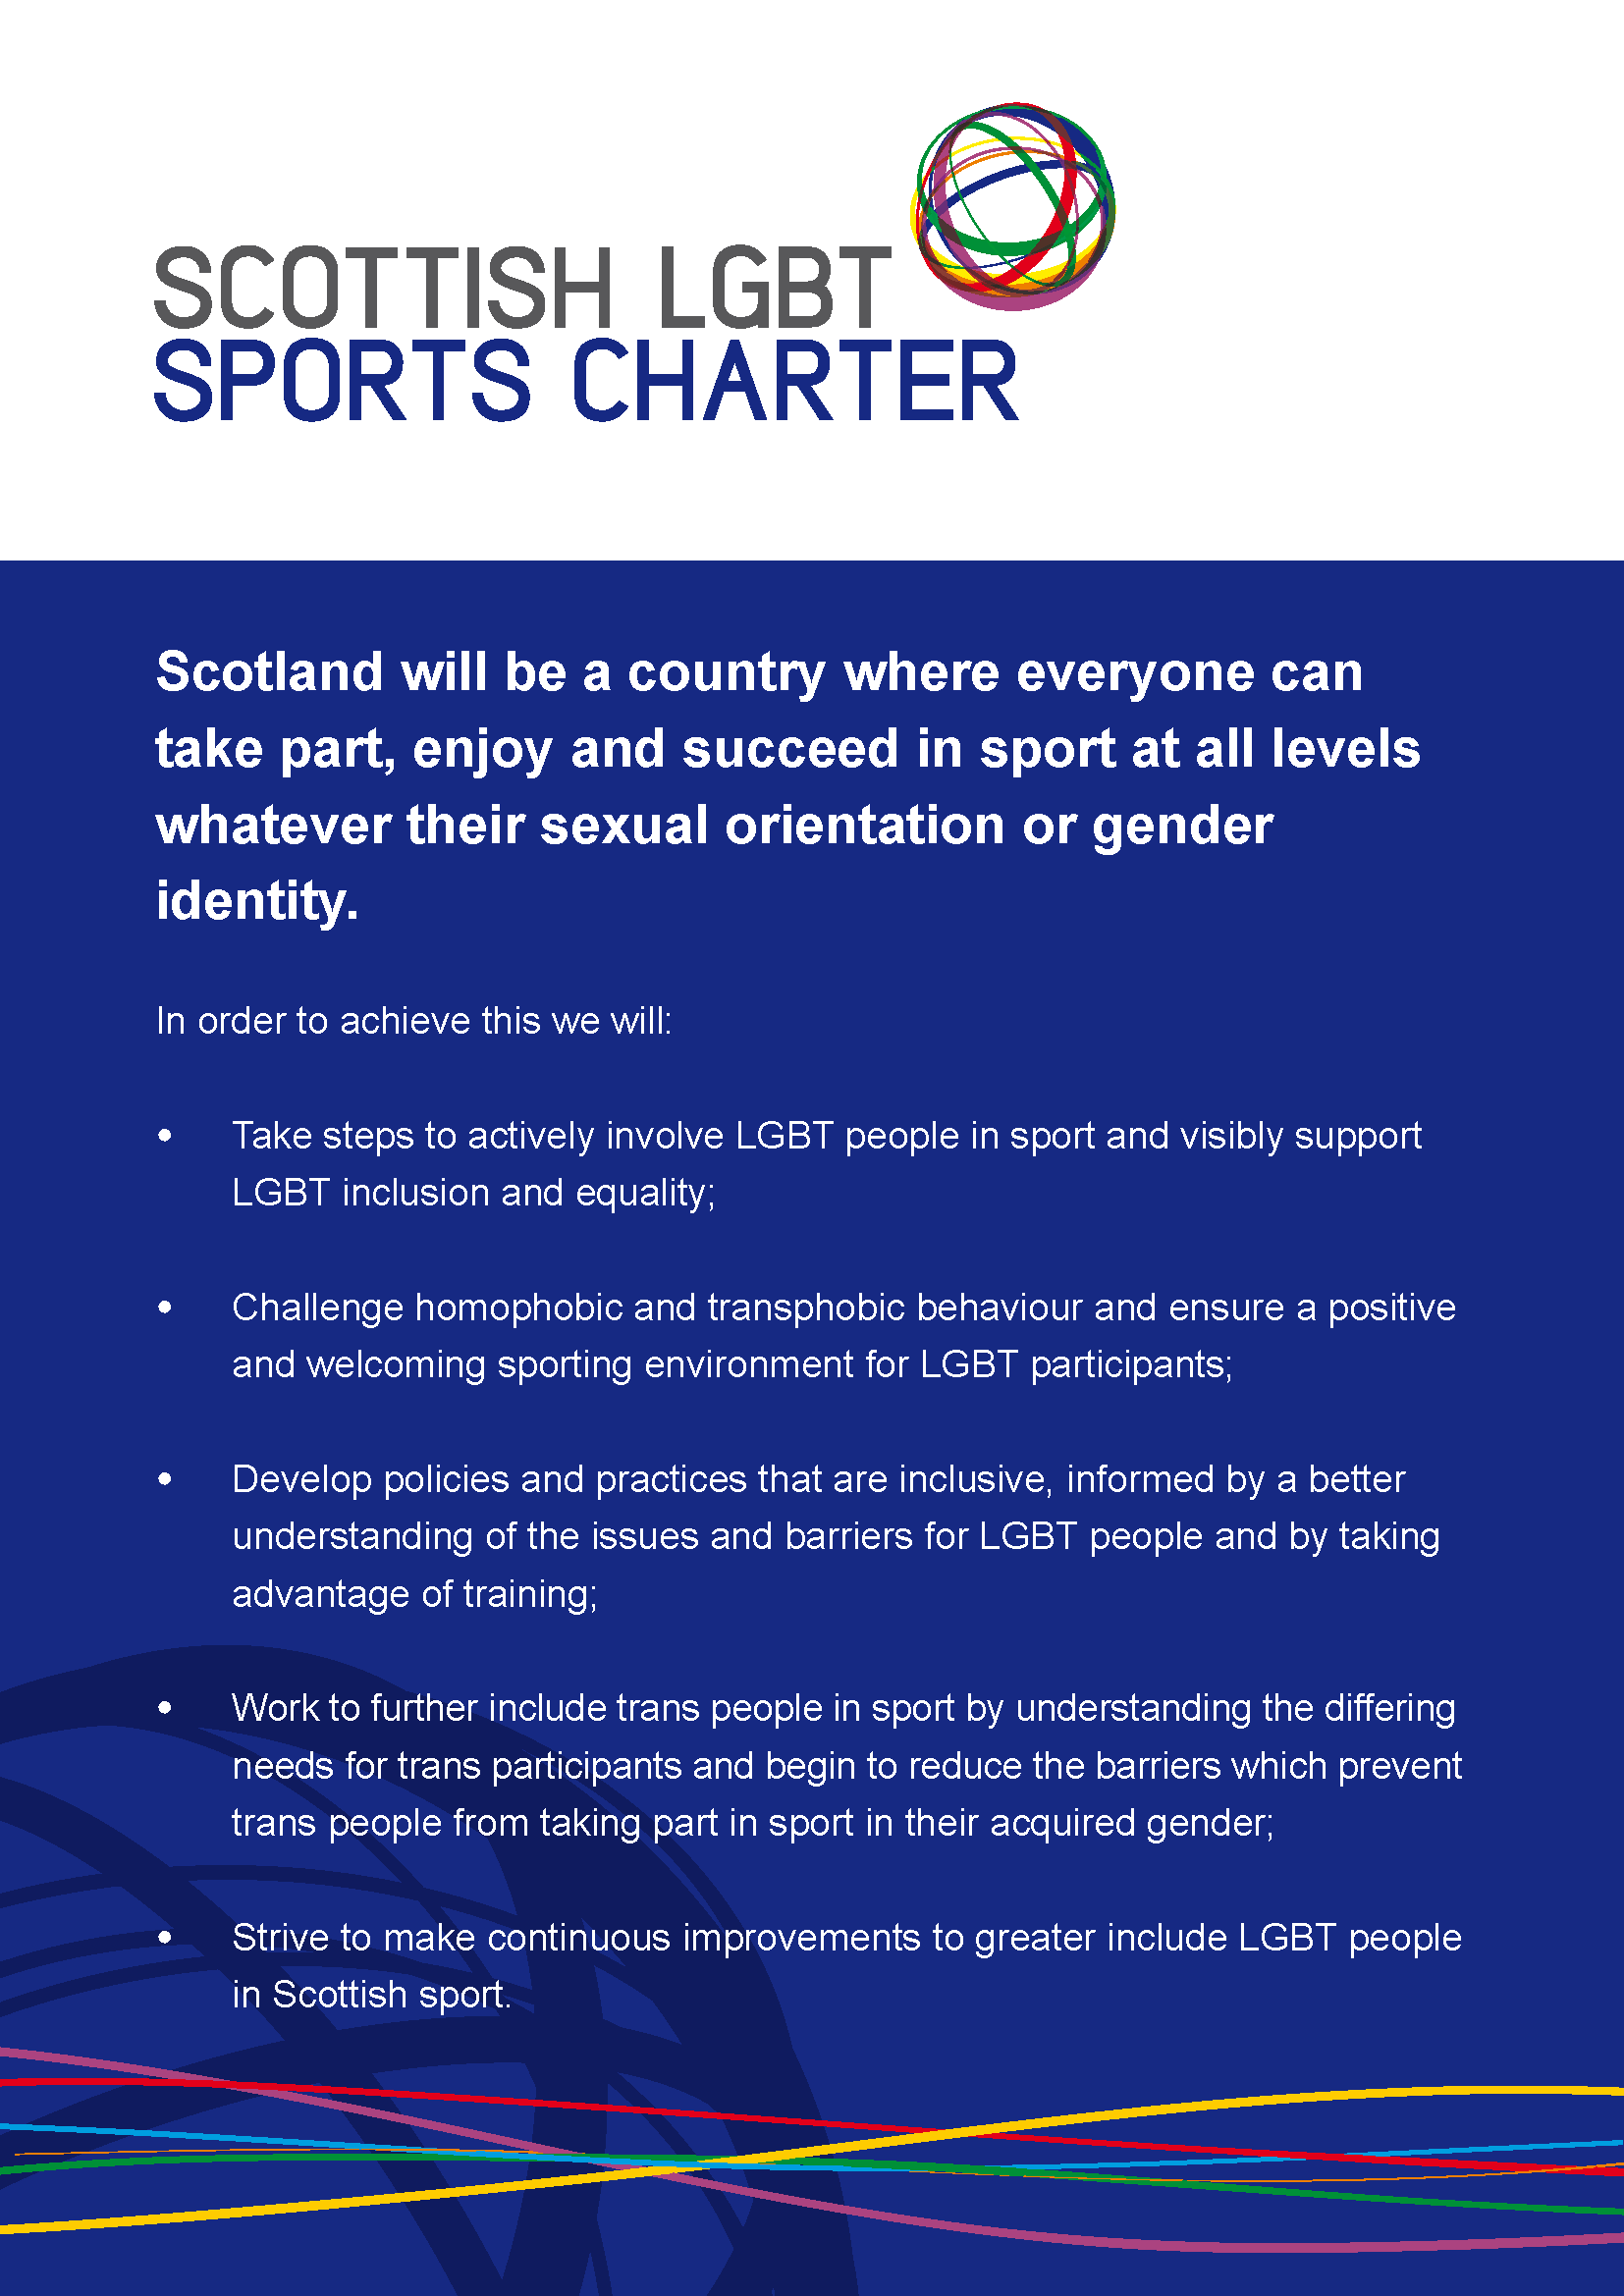 The Scottish LGBT Sports Charter